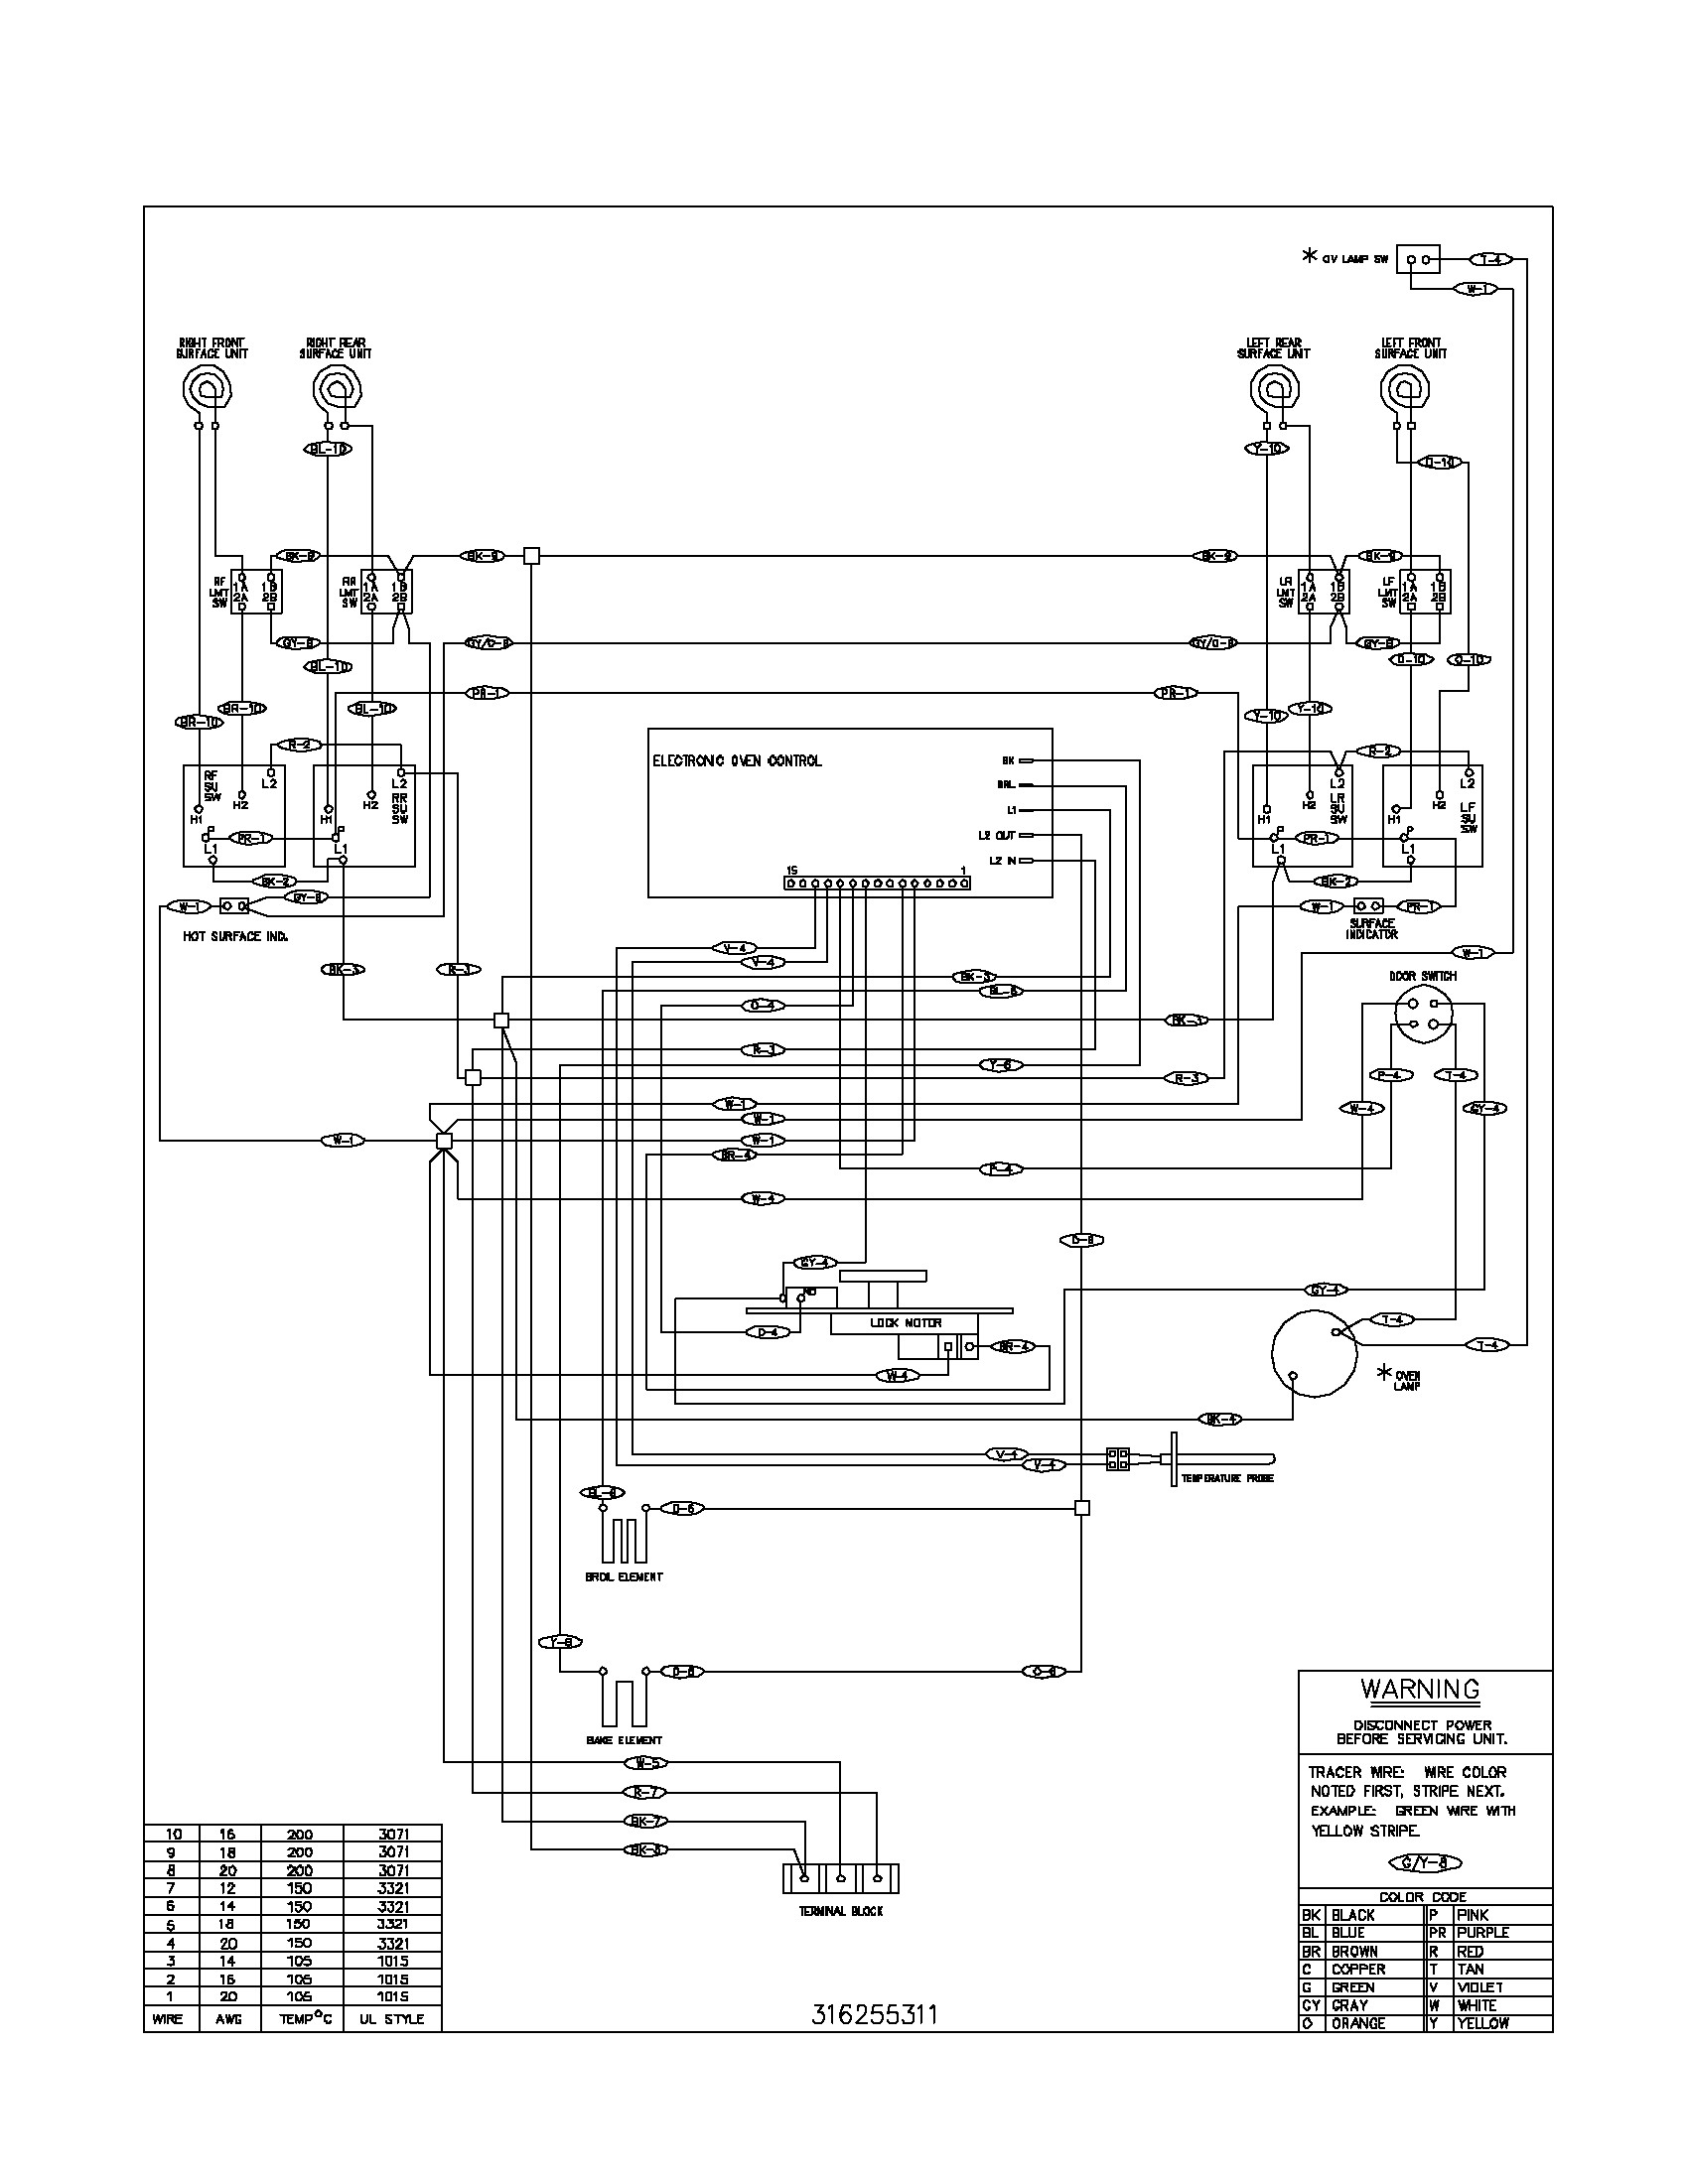 hight resolution of  gas stove igniter wiring diagram wiring diagram rh 04 ansolsolder co electric furnace wiring gas stove